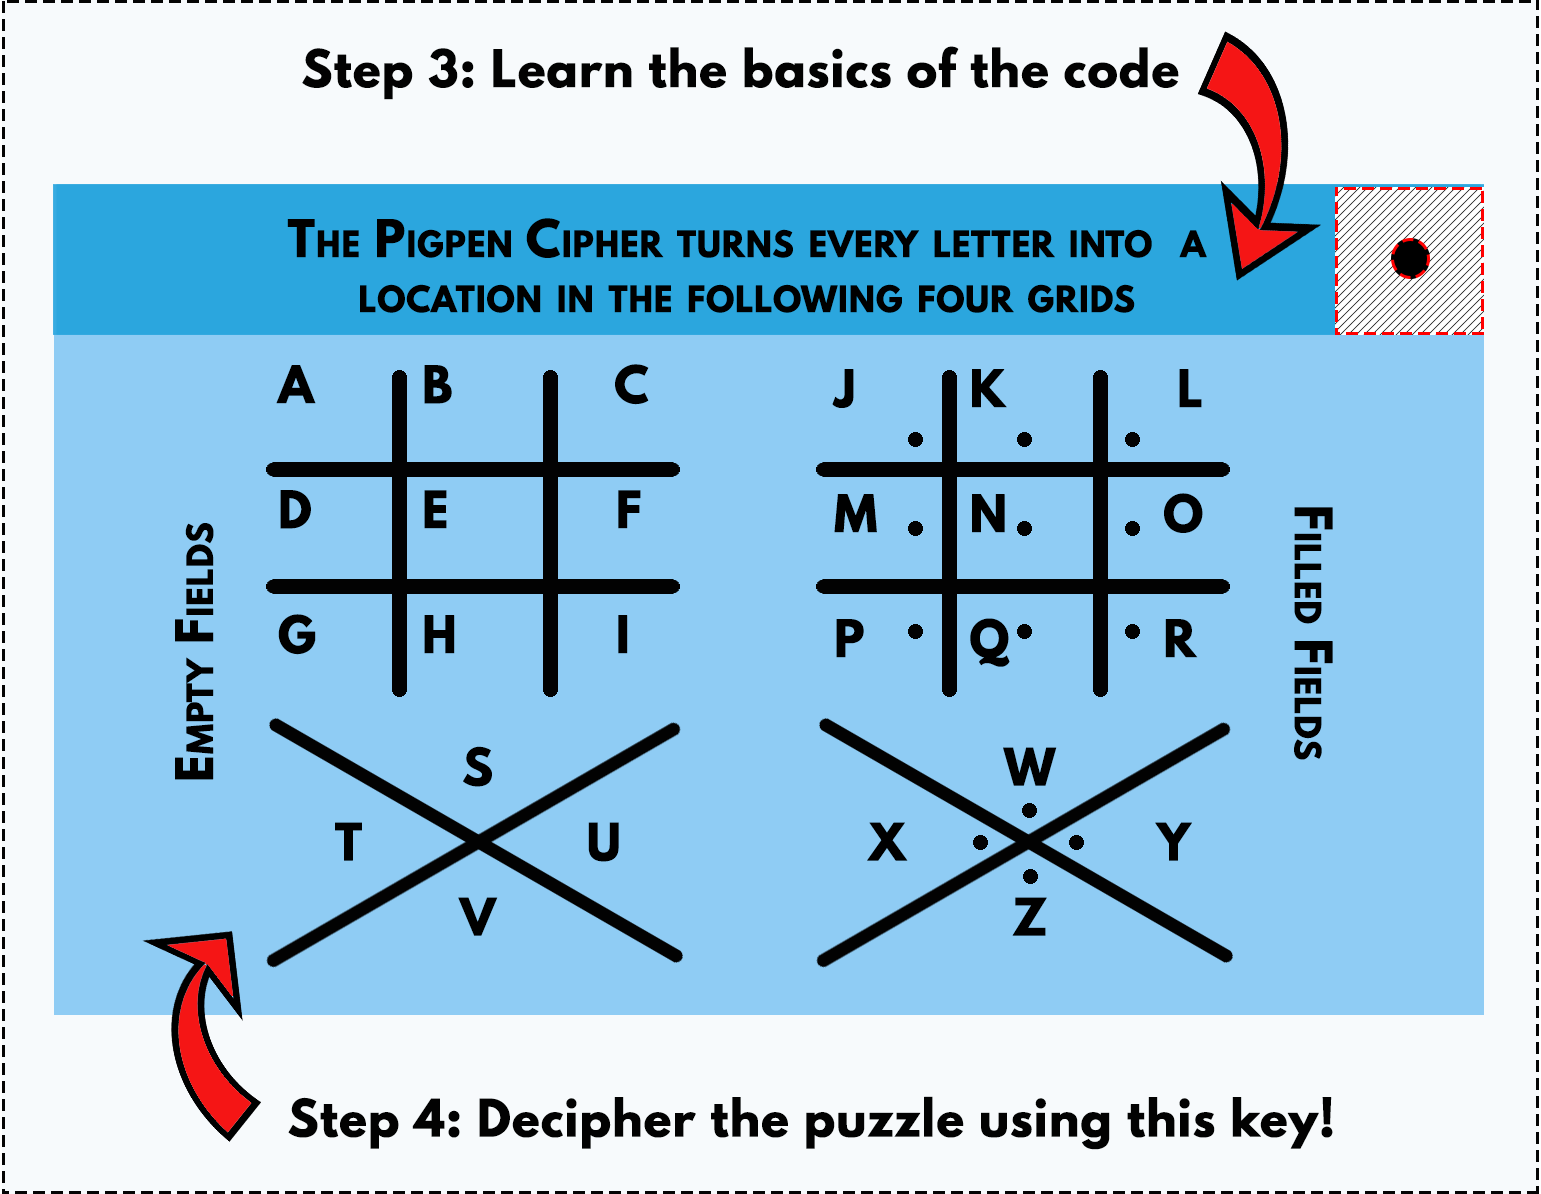 Learn the basics of the code, then solve the puzzle!